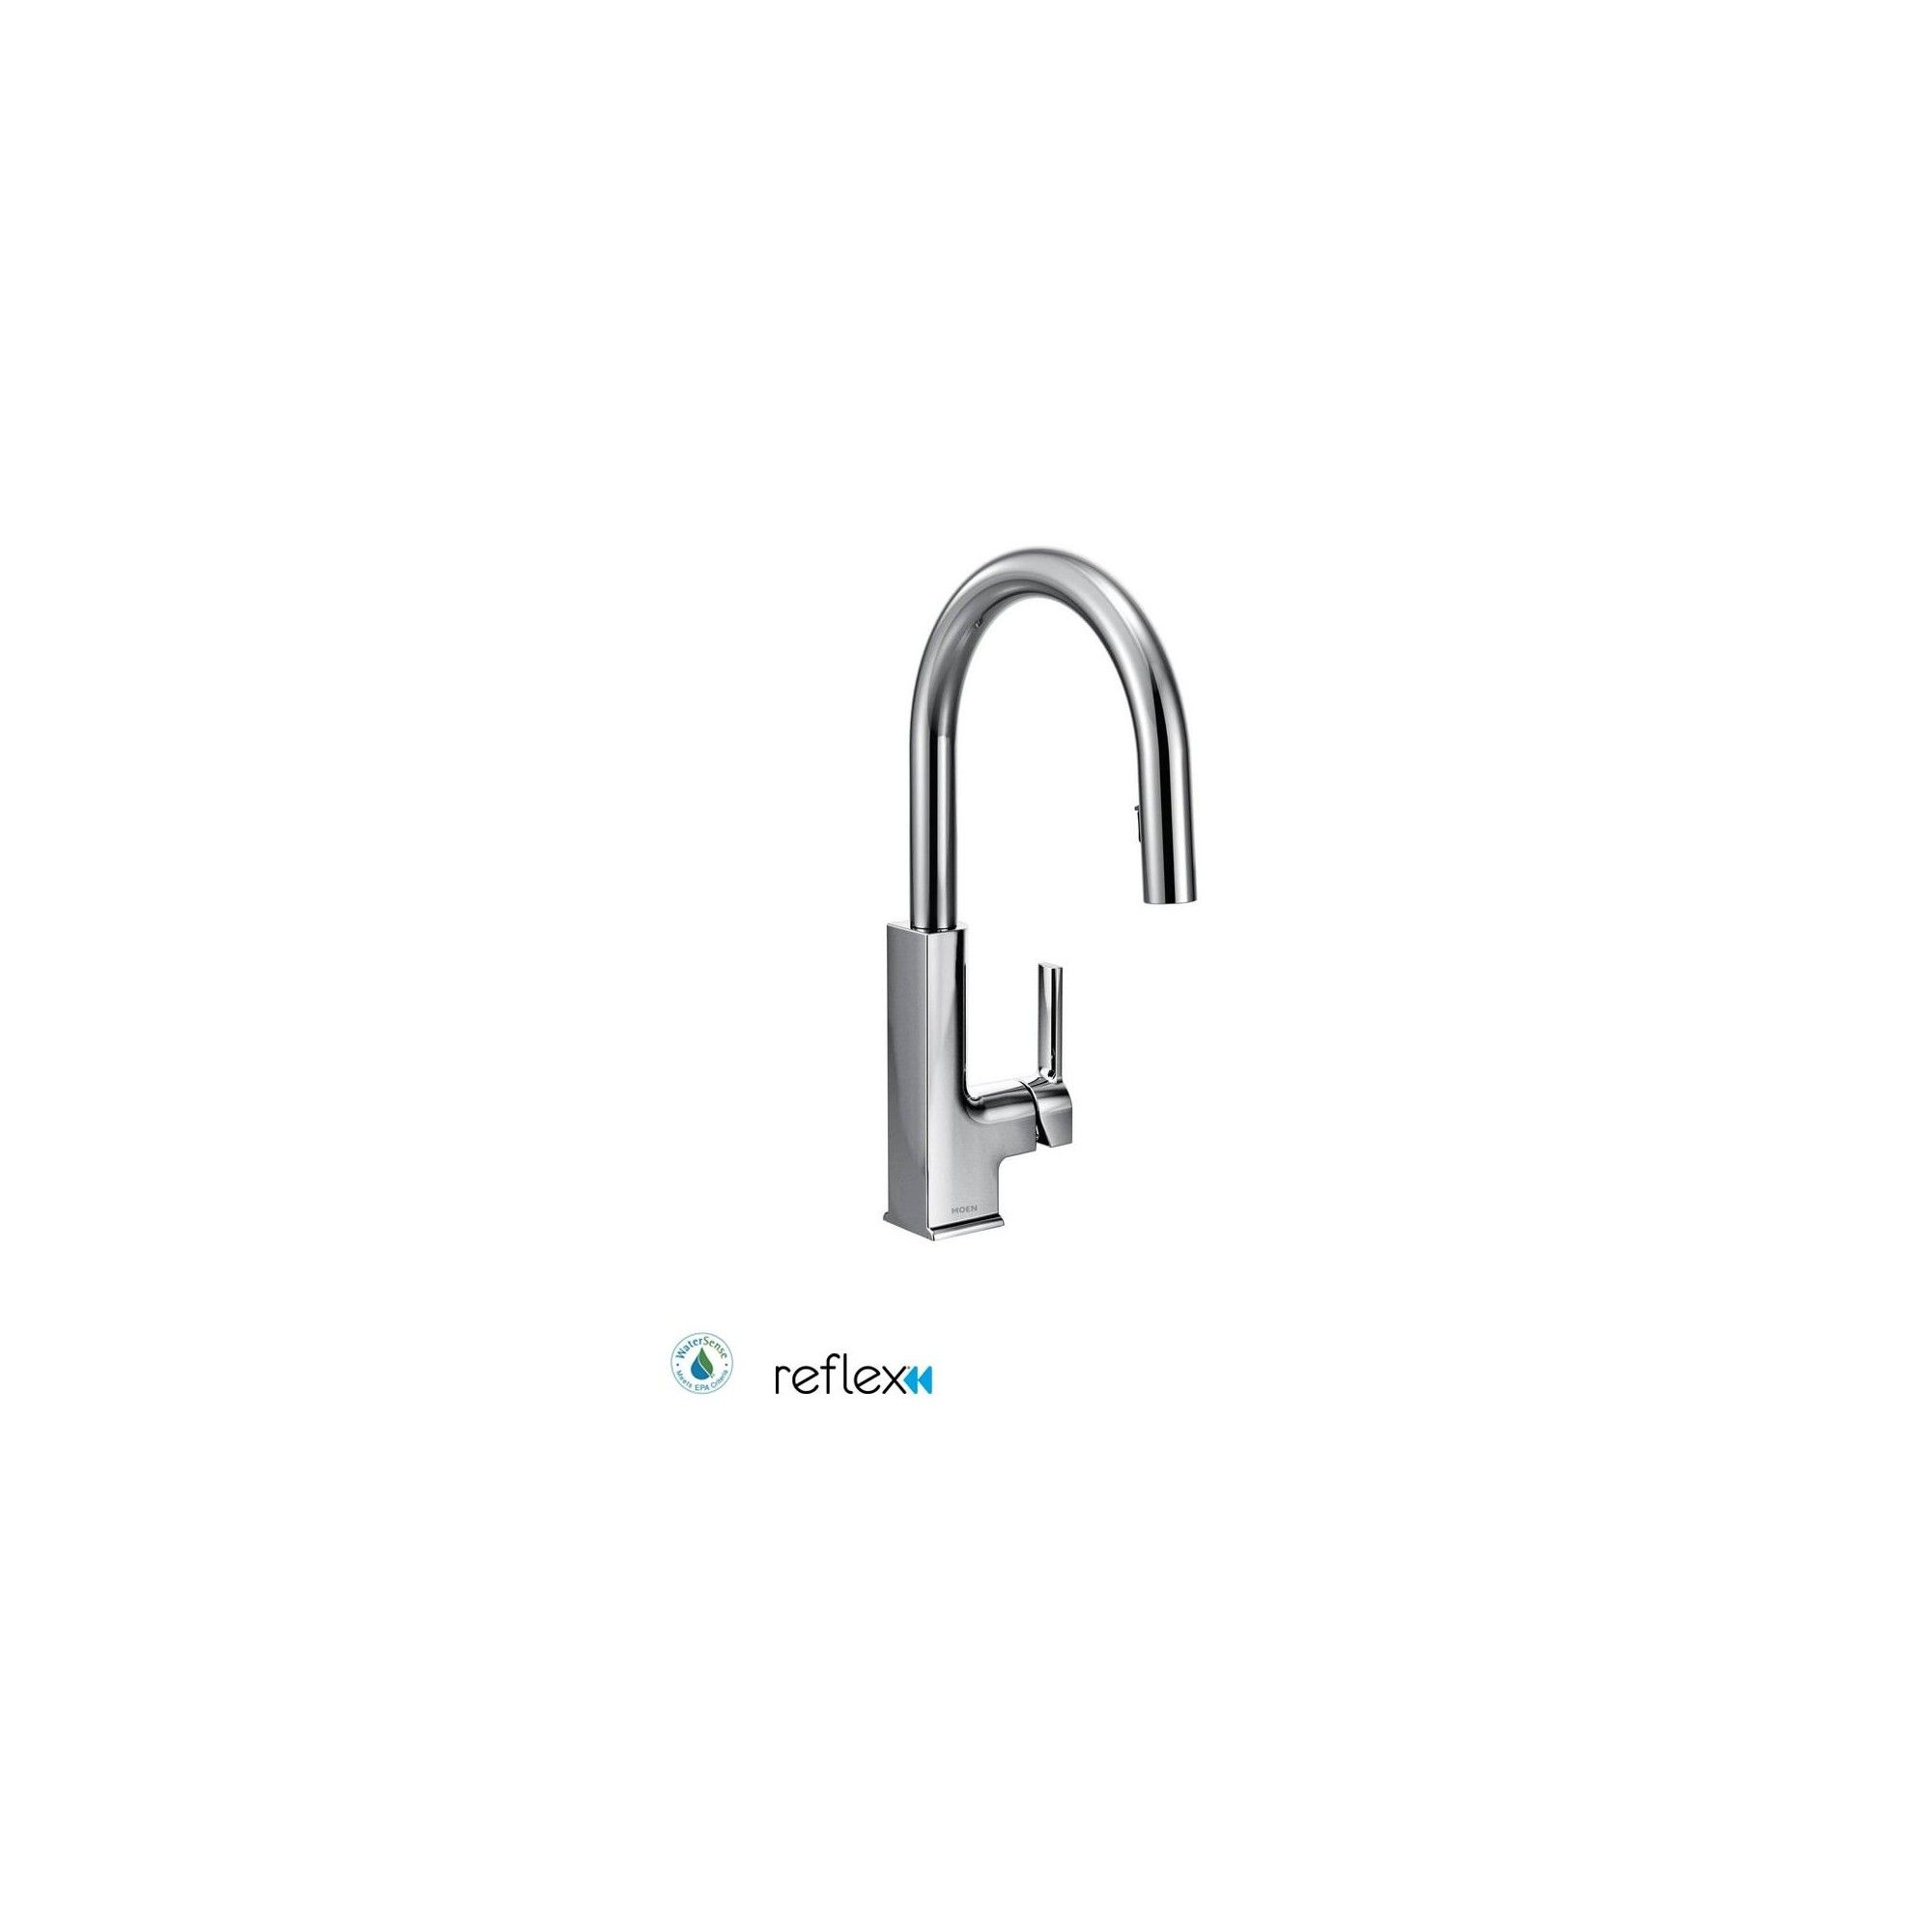 Moen S72308 Single Handle Pulldown Spray Kitchen Faucet Chrome